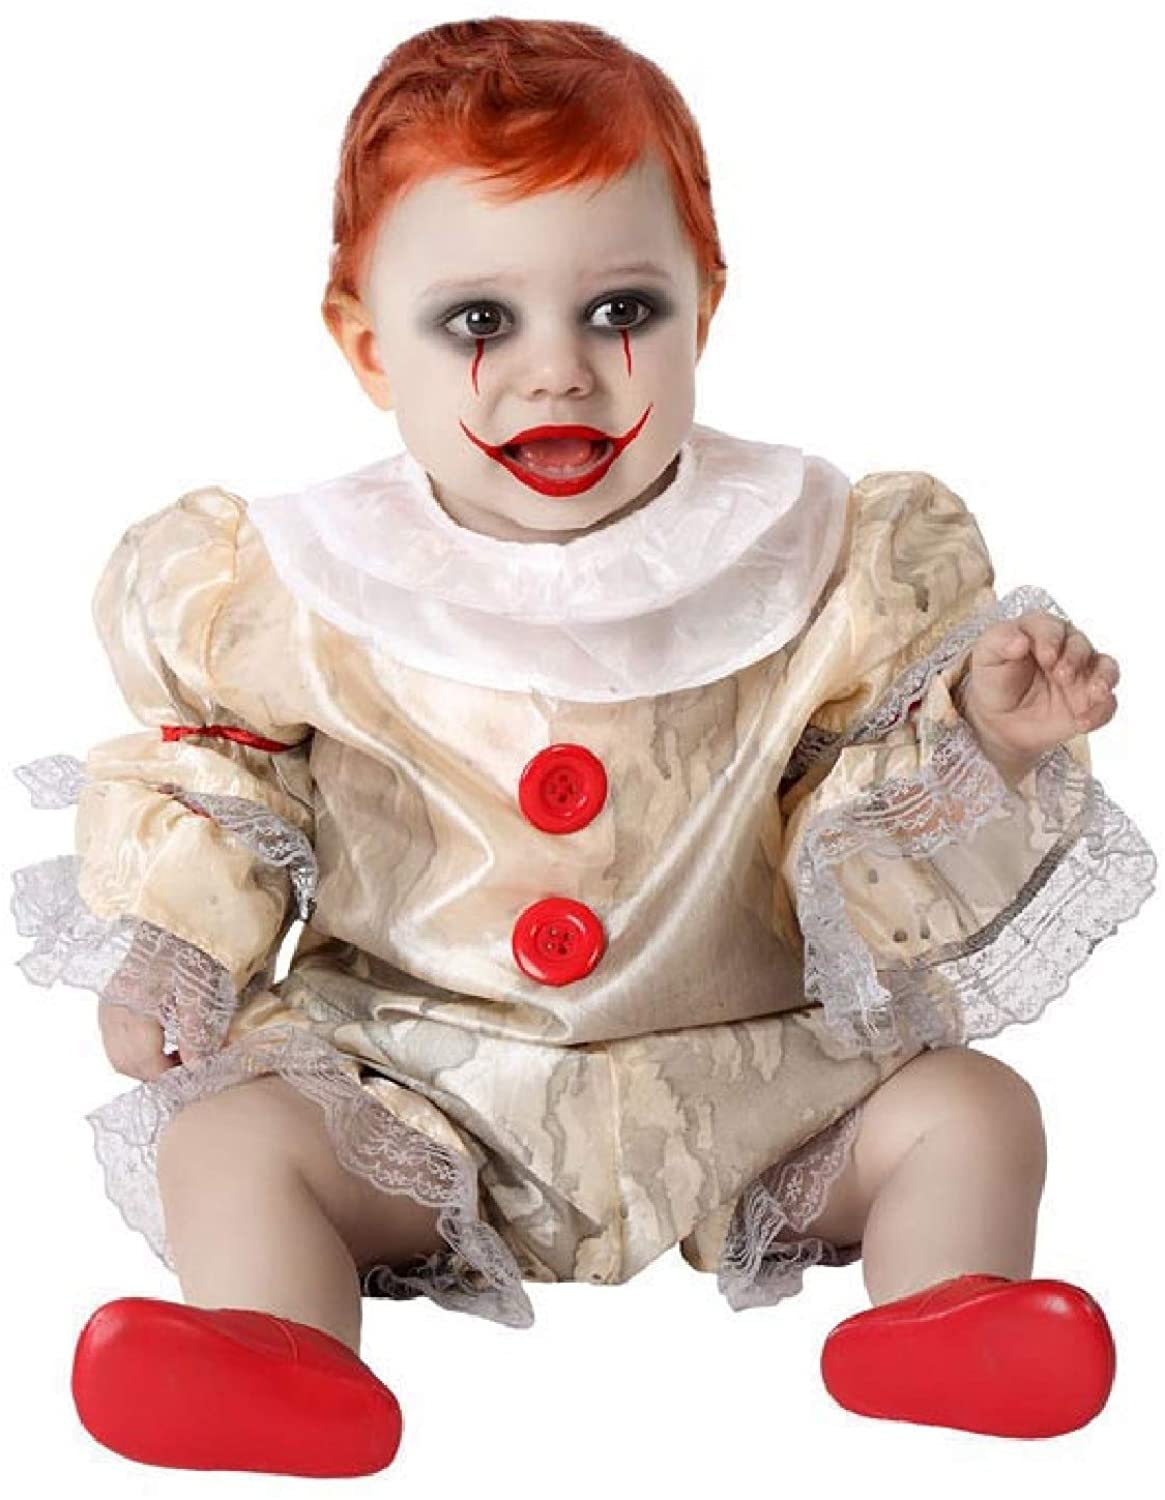 Baby Toddler Boys Girls Vintage Horror Bad Clown Halloween Fancy Dress Costume Outfit 6months-3years